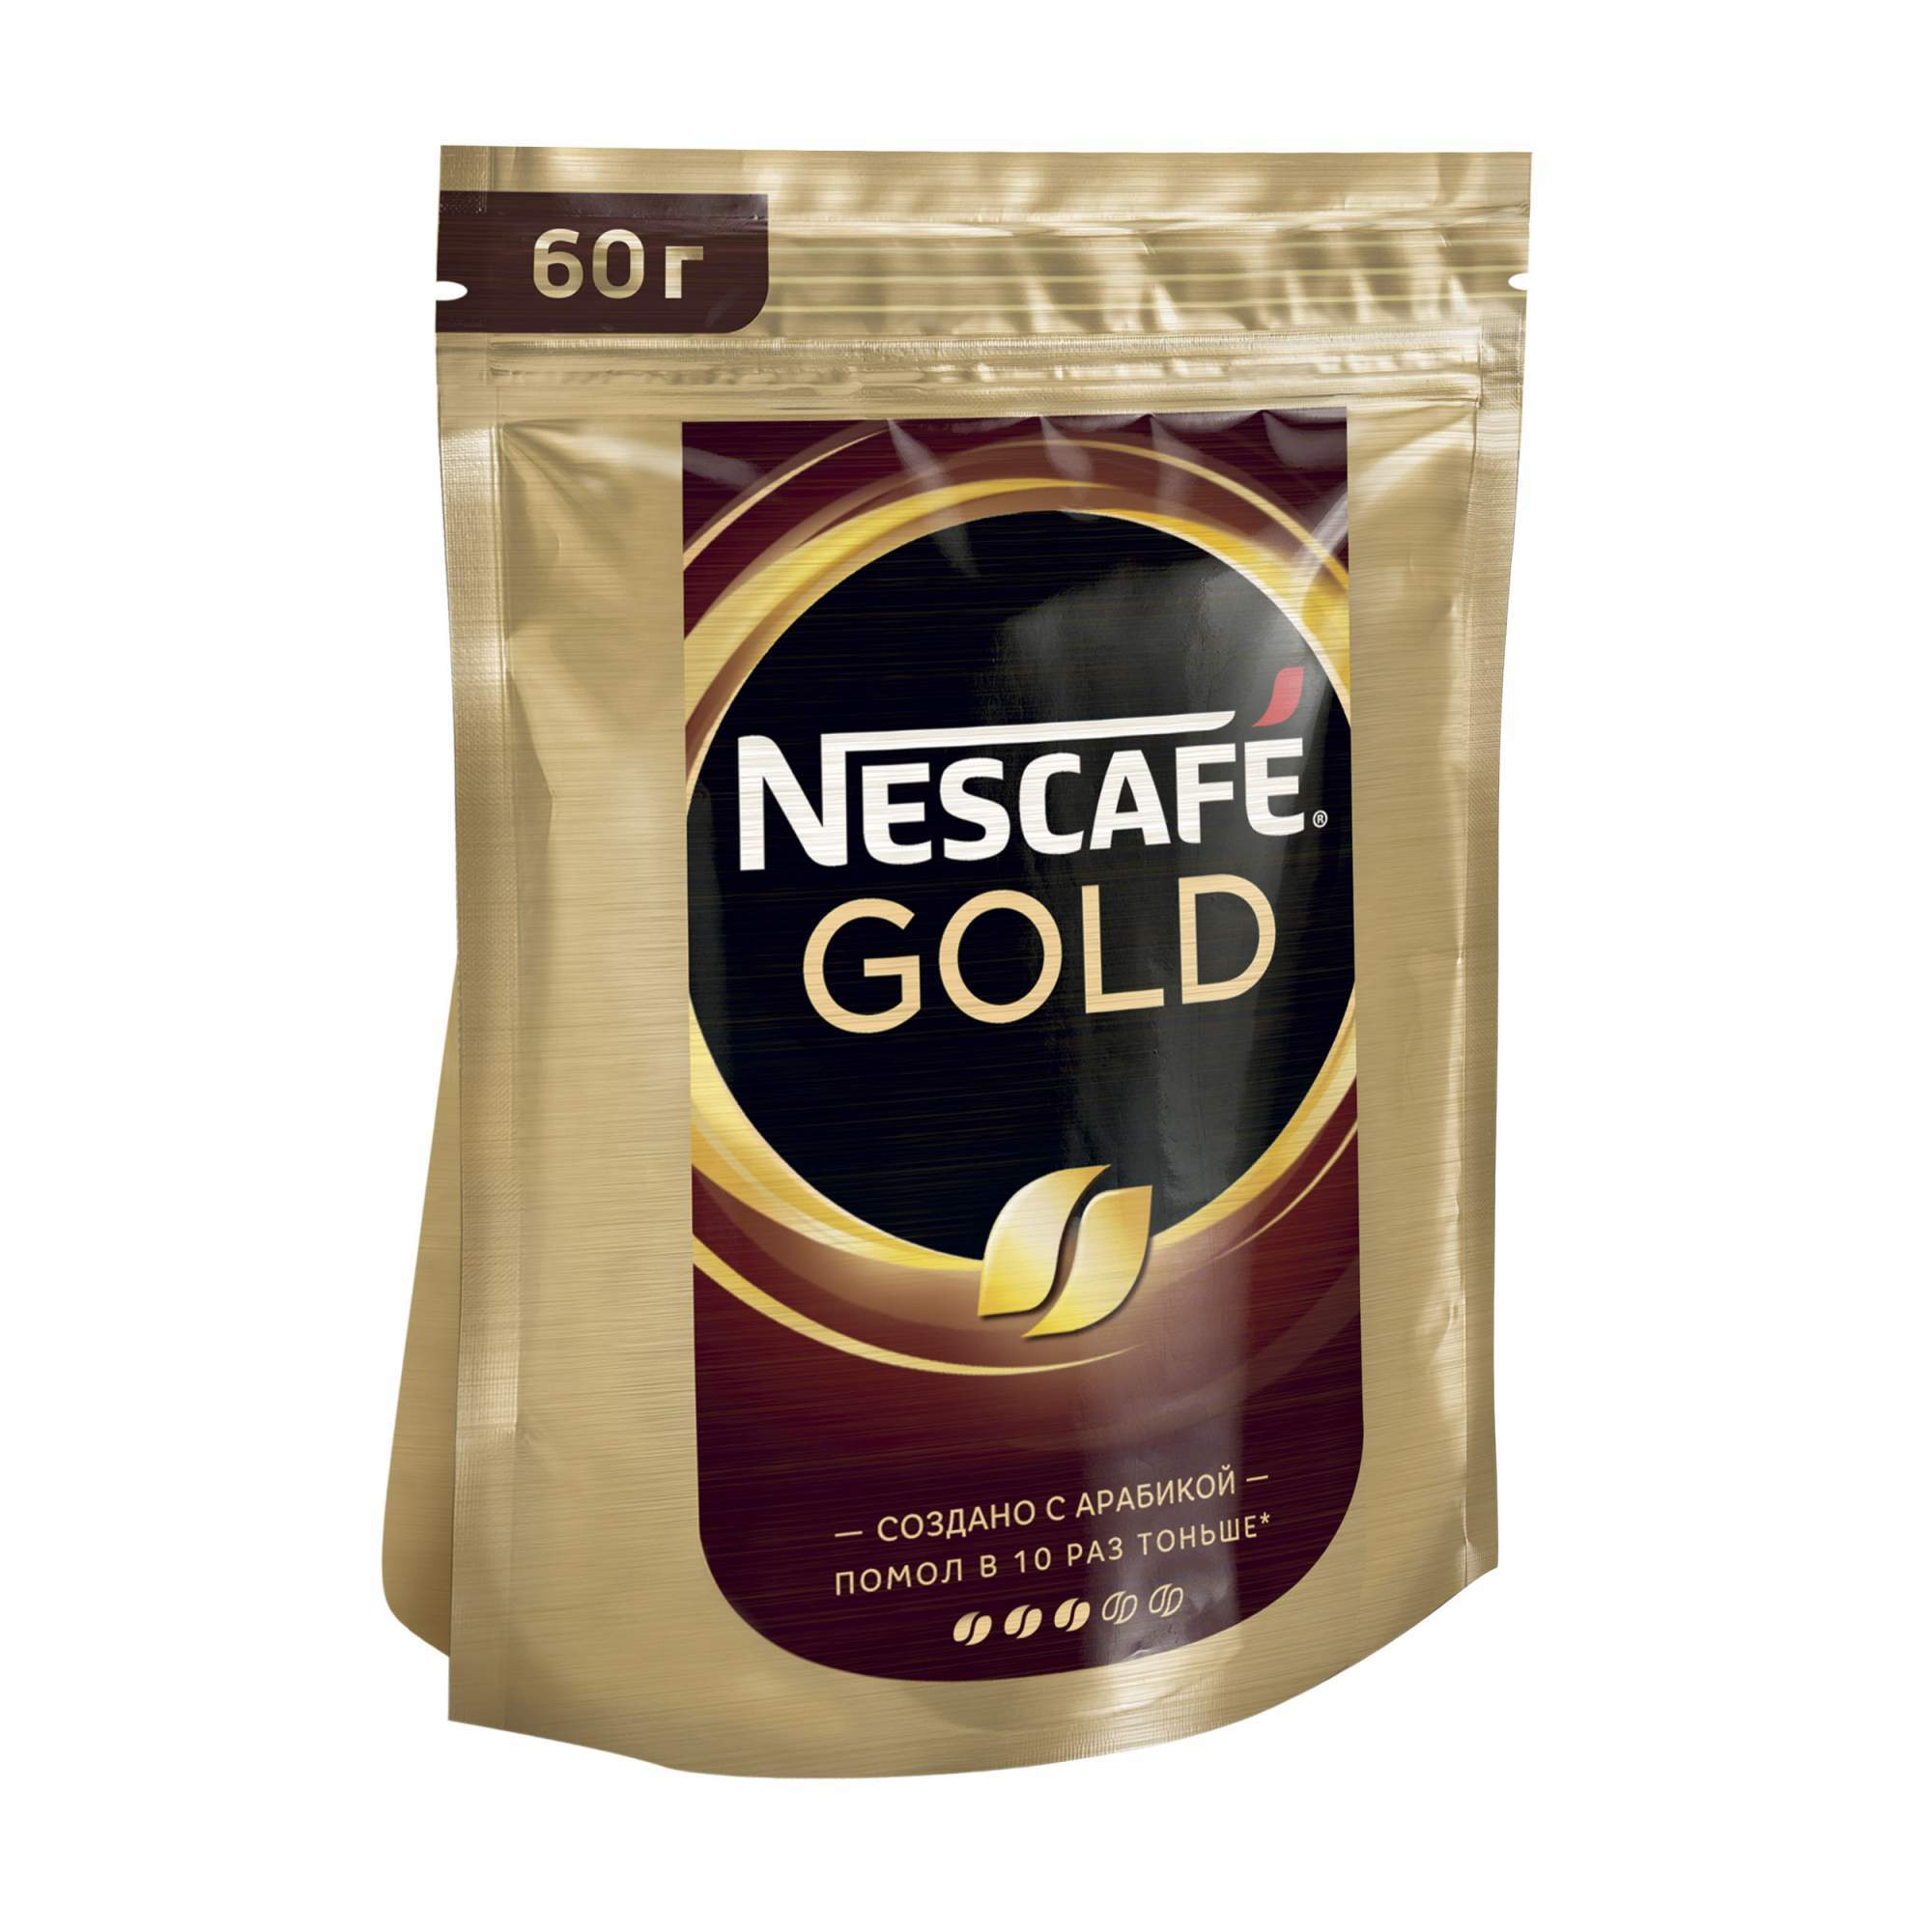 Nescafe GOLD  мягкая упаковка 60г